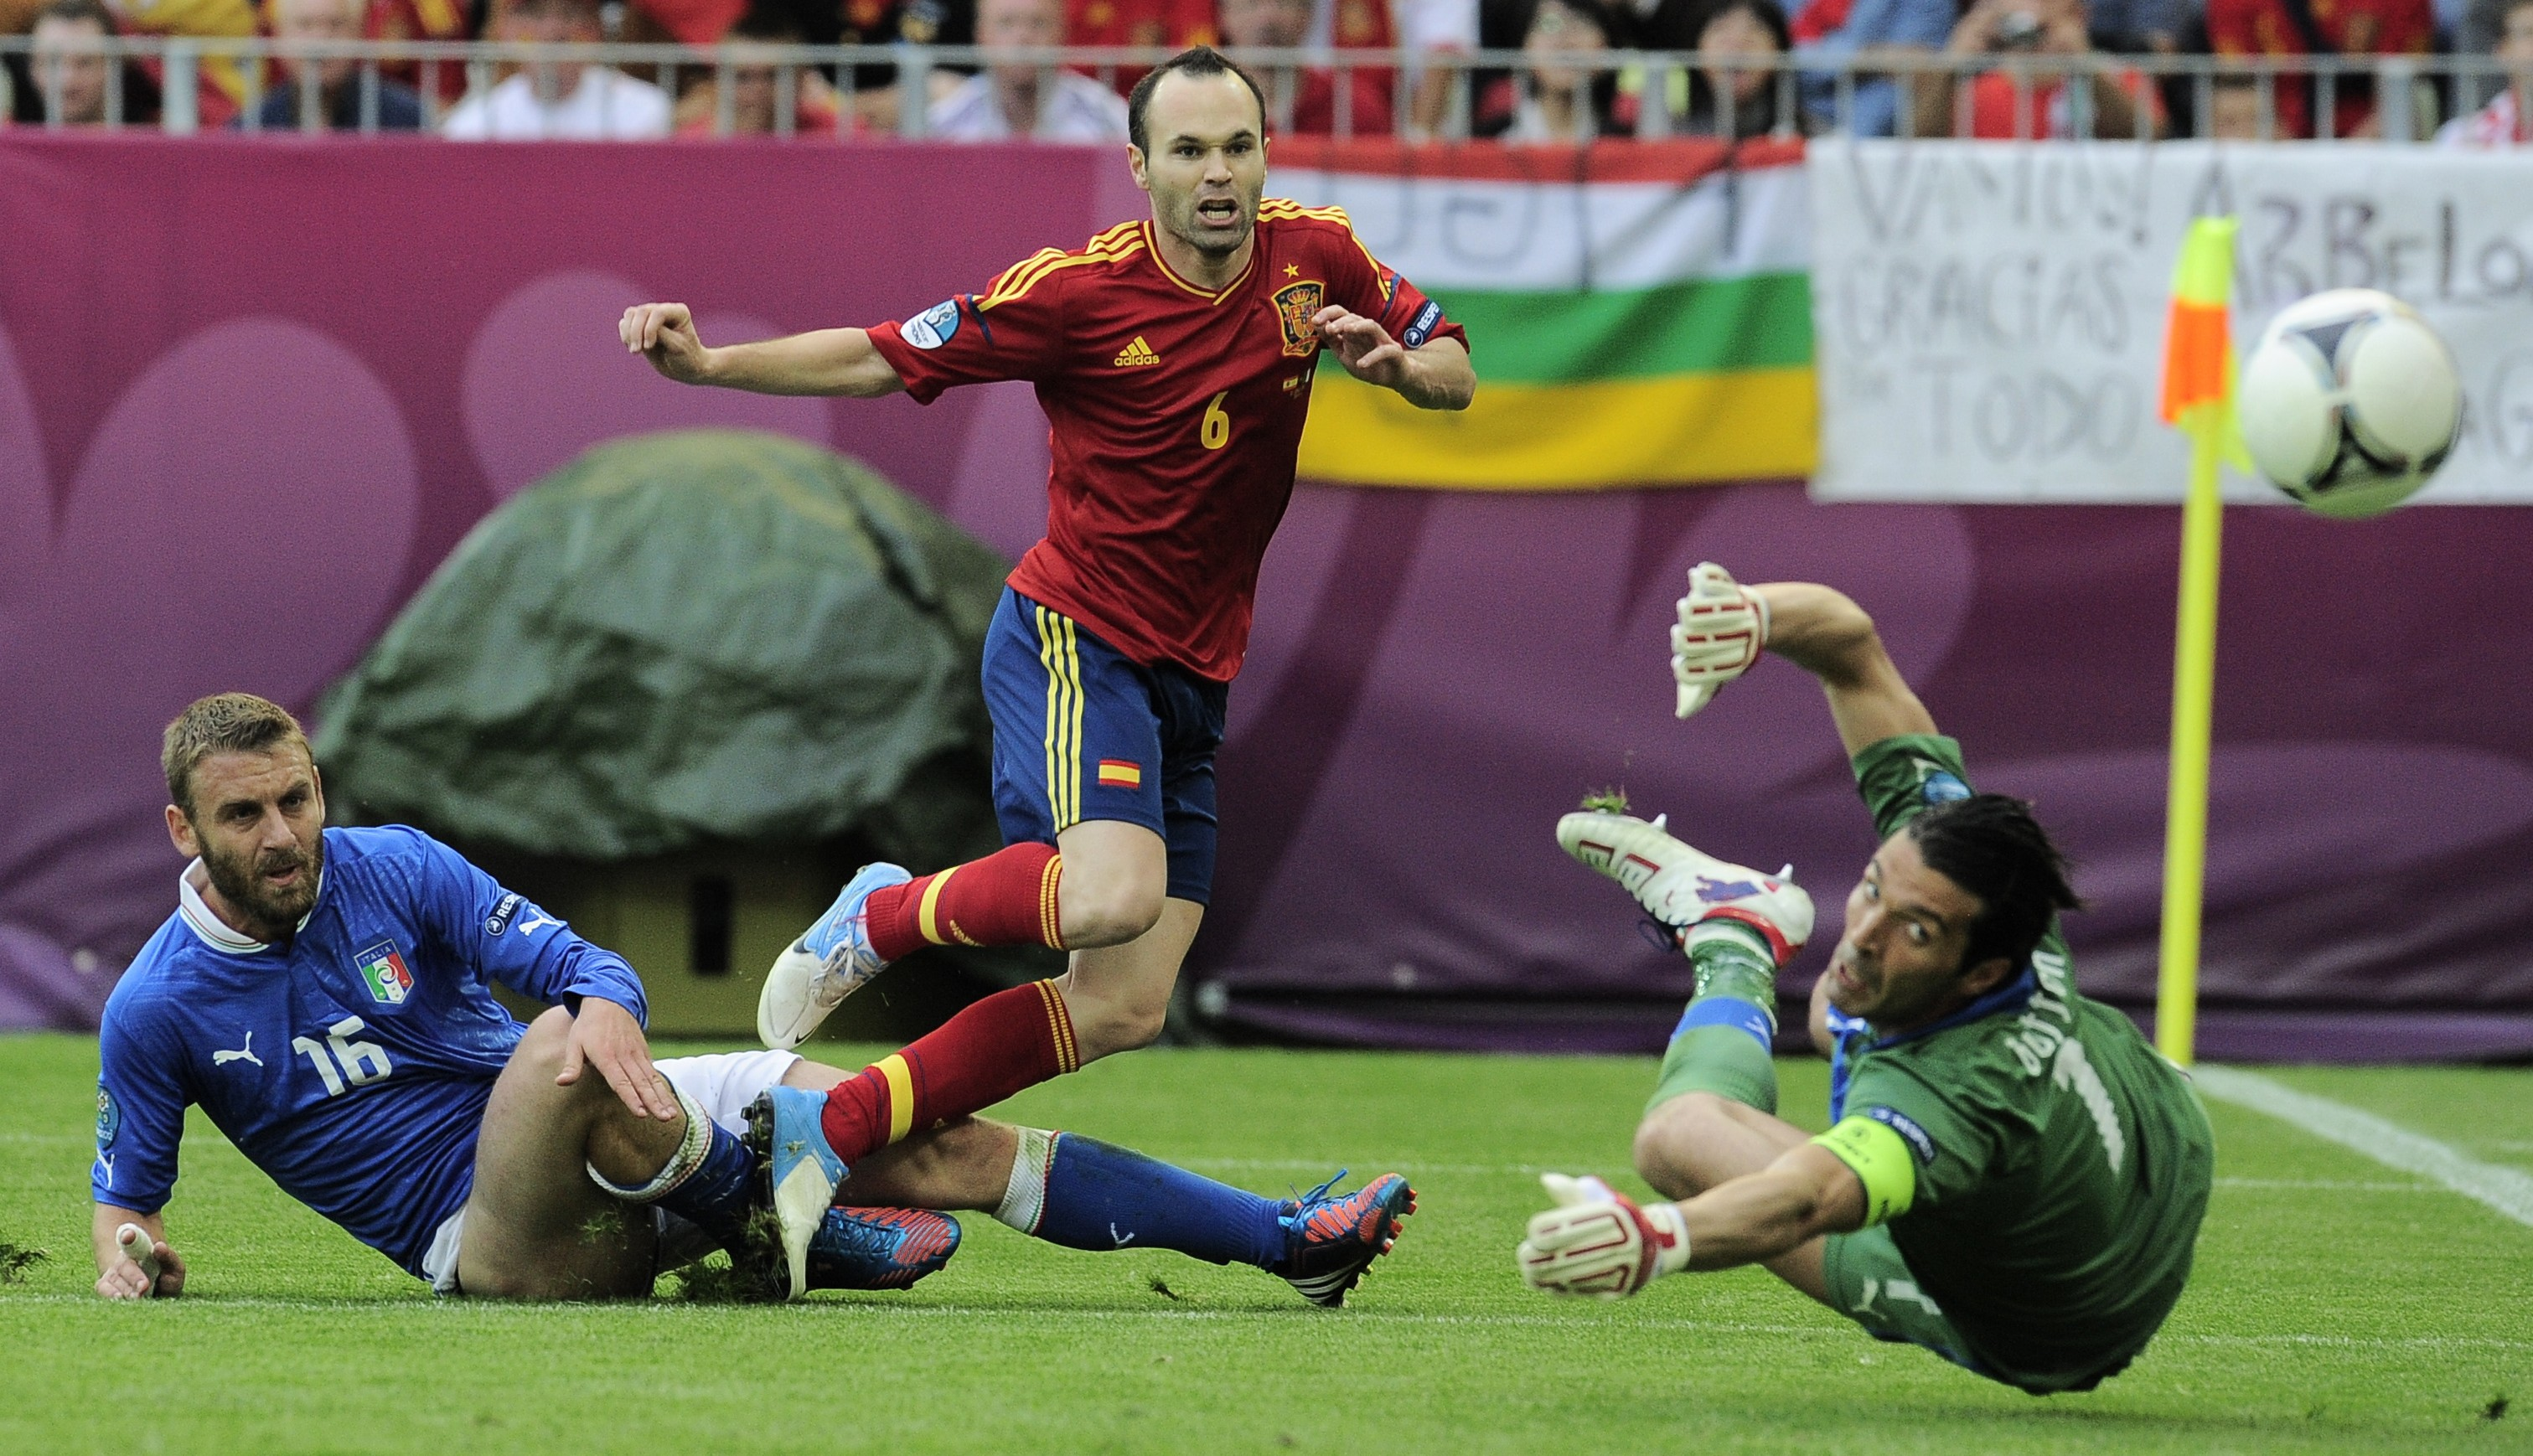 Spain's Andres Iniesta fails to score past Italy's Daniele De Rossi, left, and Italy goalkeeper Gianluigi Buffon, right, during the Euro 2012 soccer championship Group C match between  Spain and Italy in Gdansk, Poland, Sunday, June 10, 2012. (AP Photo/Alvaro Barrientos)